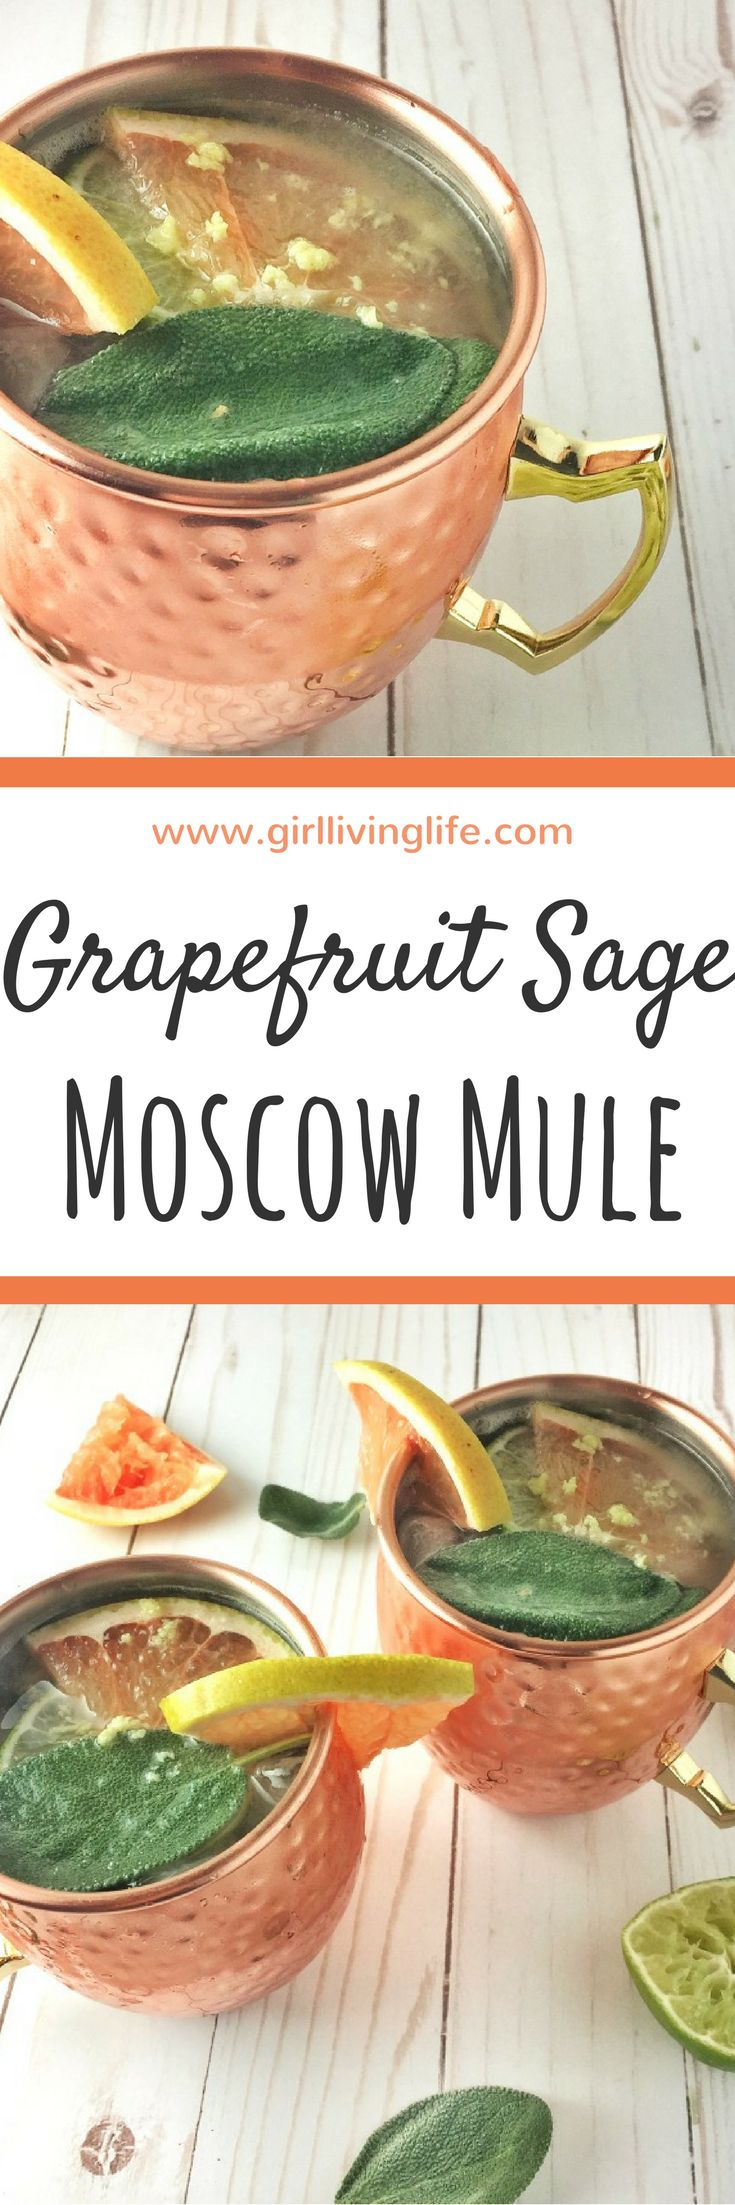 This Grapefruit Sage Moscow Mule is the perfect refreshing drink! Great for a hot summer day at the cottage, while the ginger adds a great spice that makes it suitable for a winter day cozied up by the fire! #moscowmule #cocktail #cocktailrecipe #grapefruit